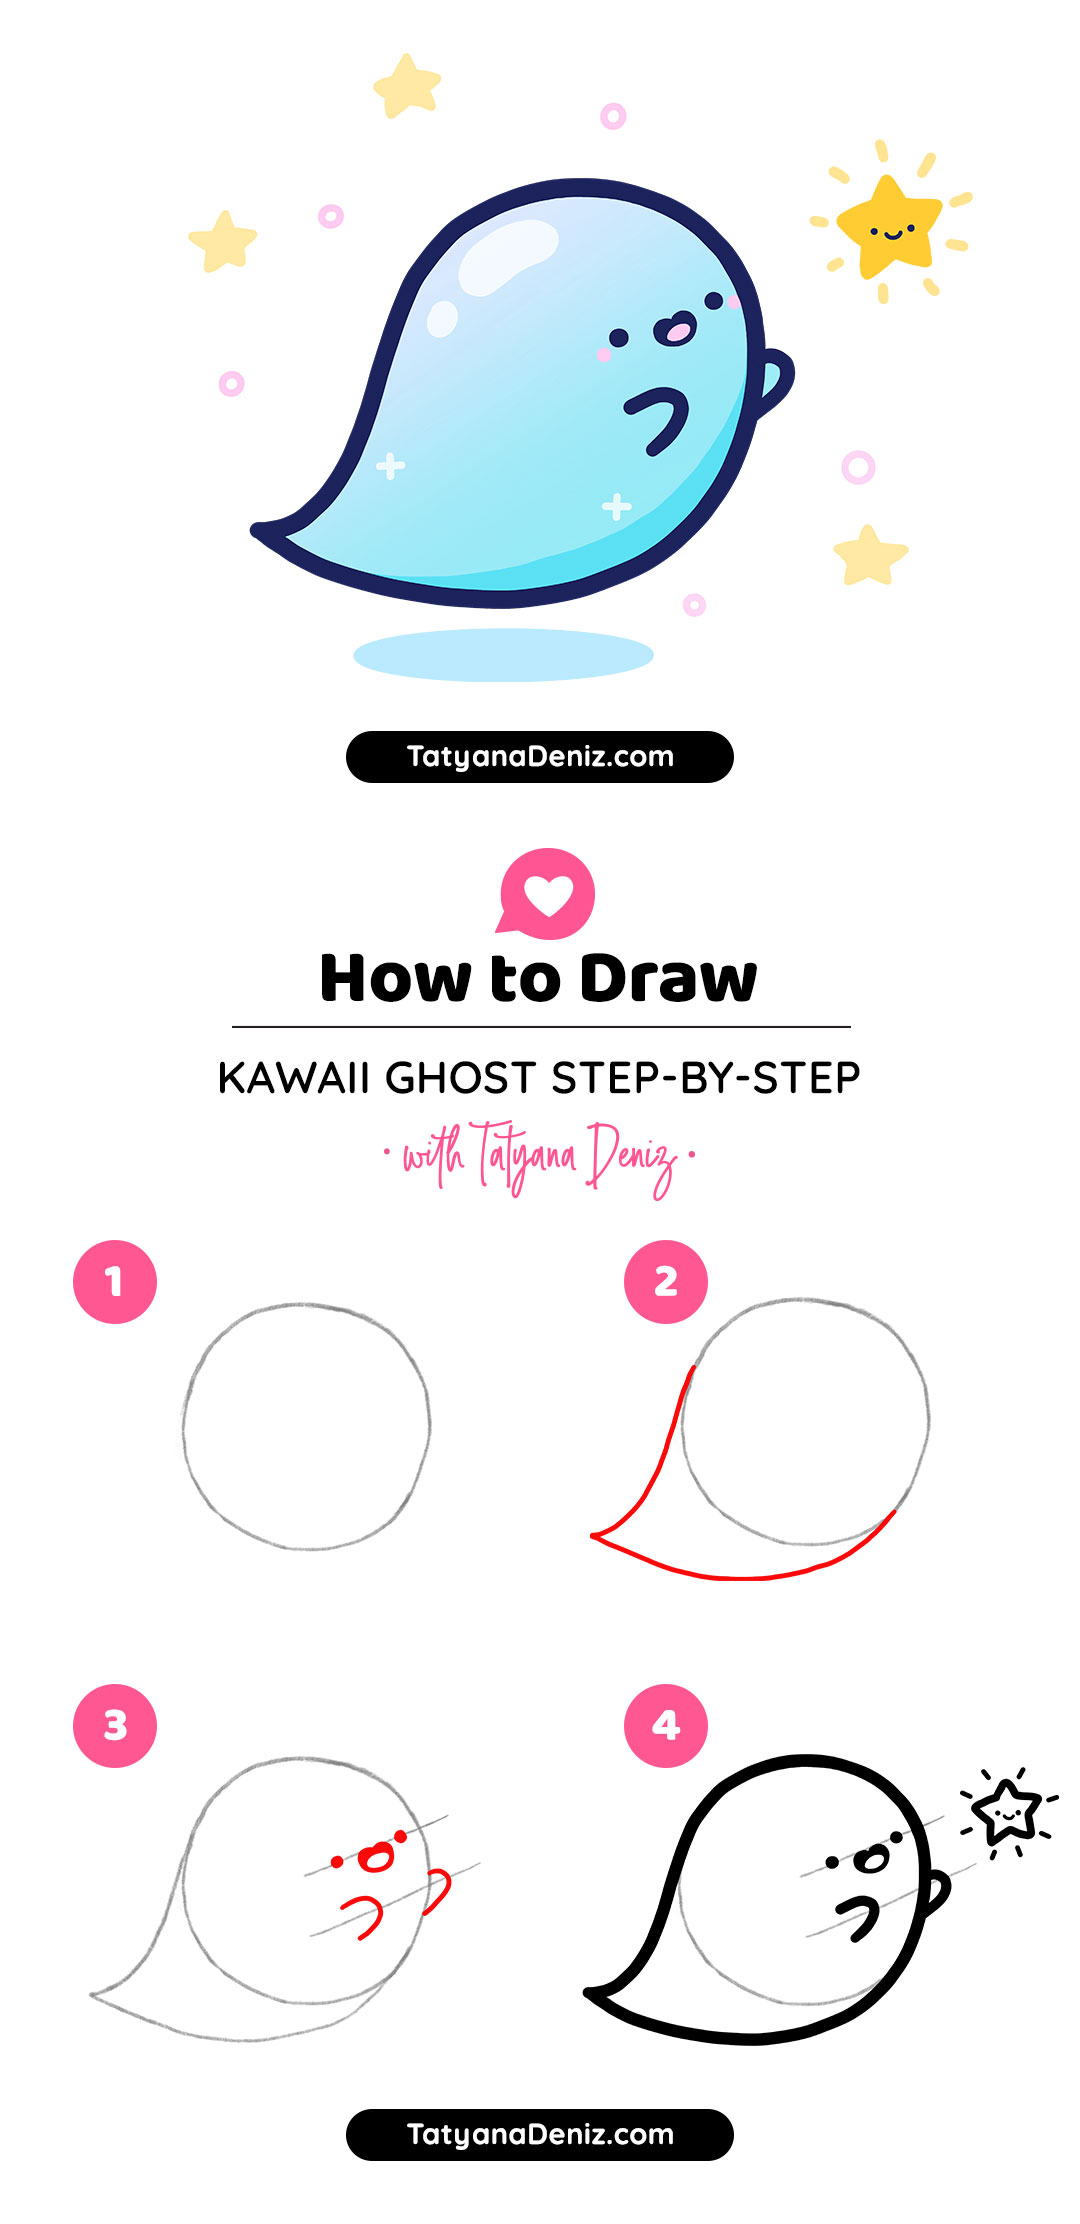 How to draw kawaii ghost step-by-step